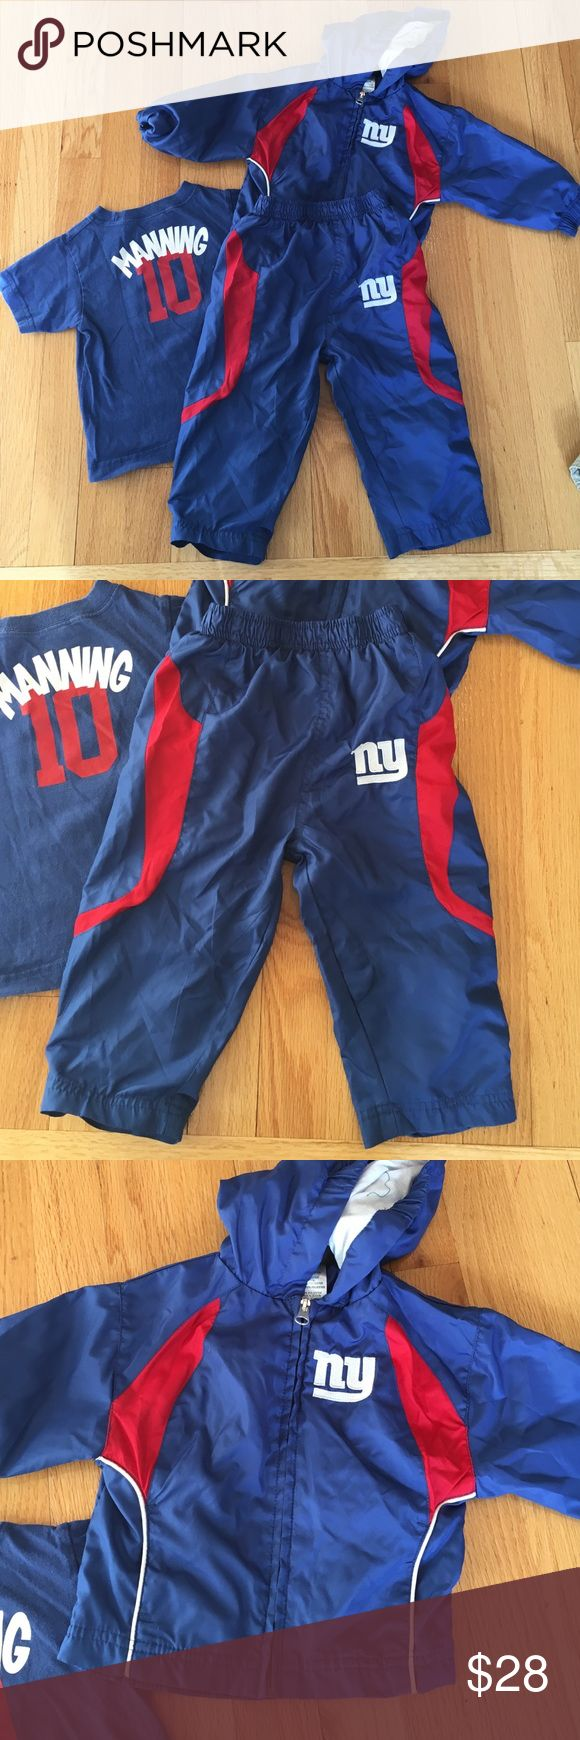 NY Giants track outfit and Manning tee 🔴 The track outfit is in brand-new condition from NFL authentic, 18 months. The T-shirt is a Manning T/New York Giants NFL Matching Sets